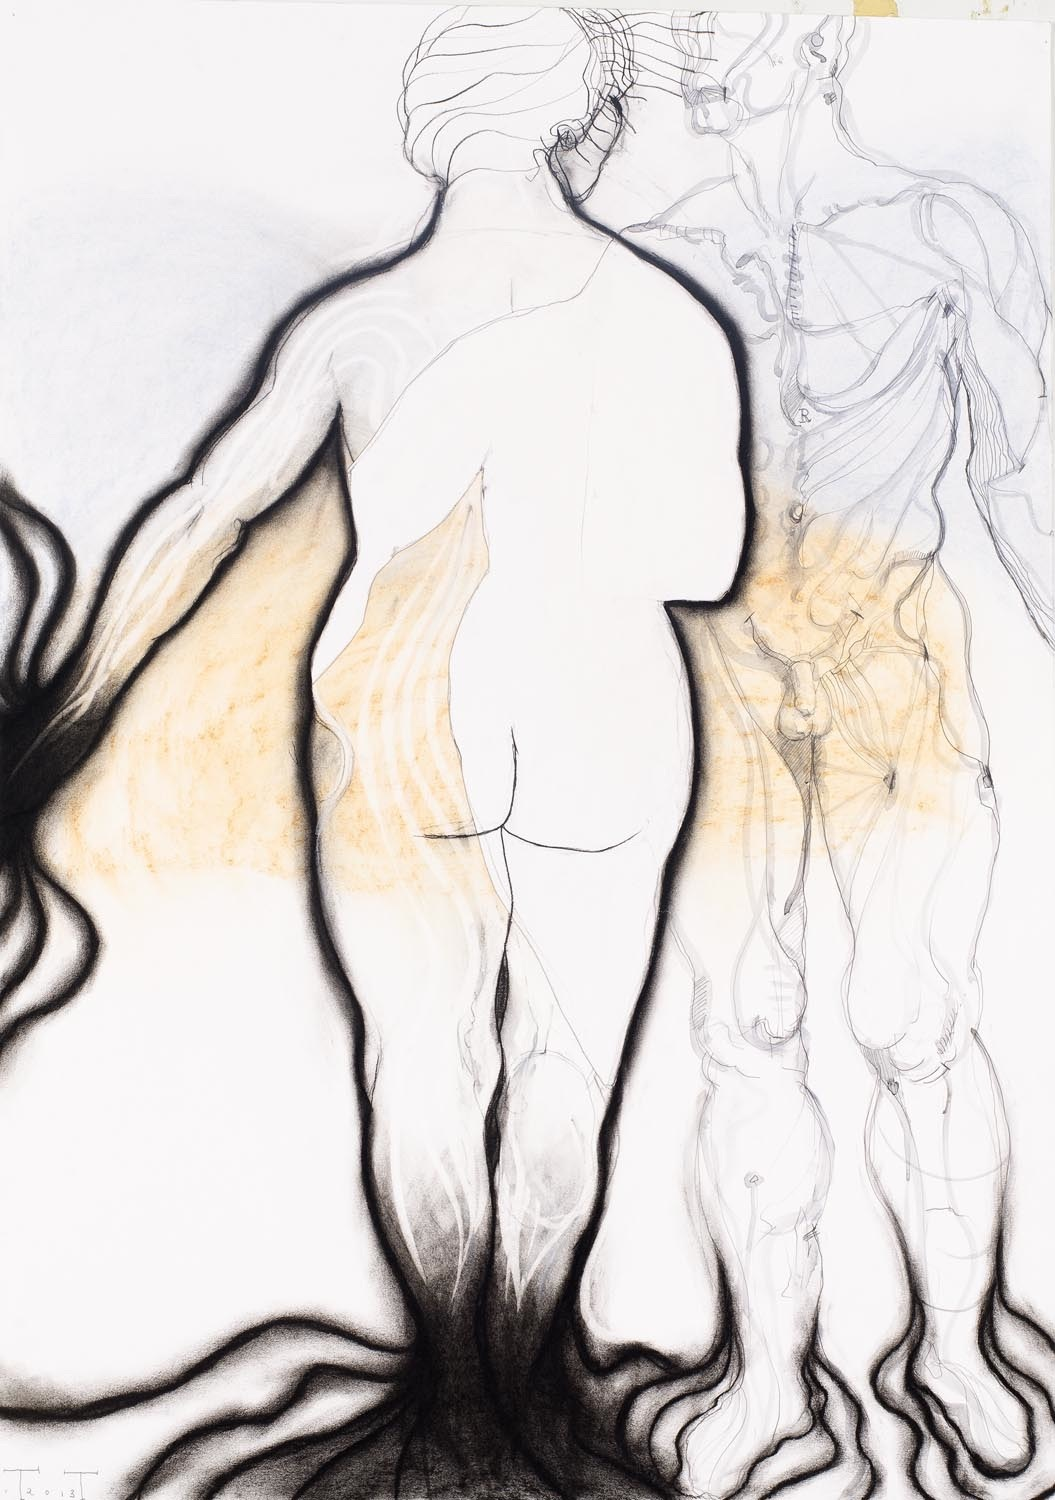 The Muse, mixed media on paper, 100 X 70 cm, 2013